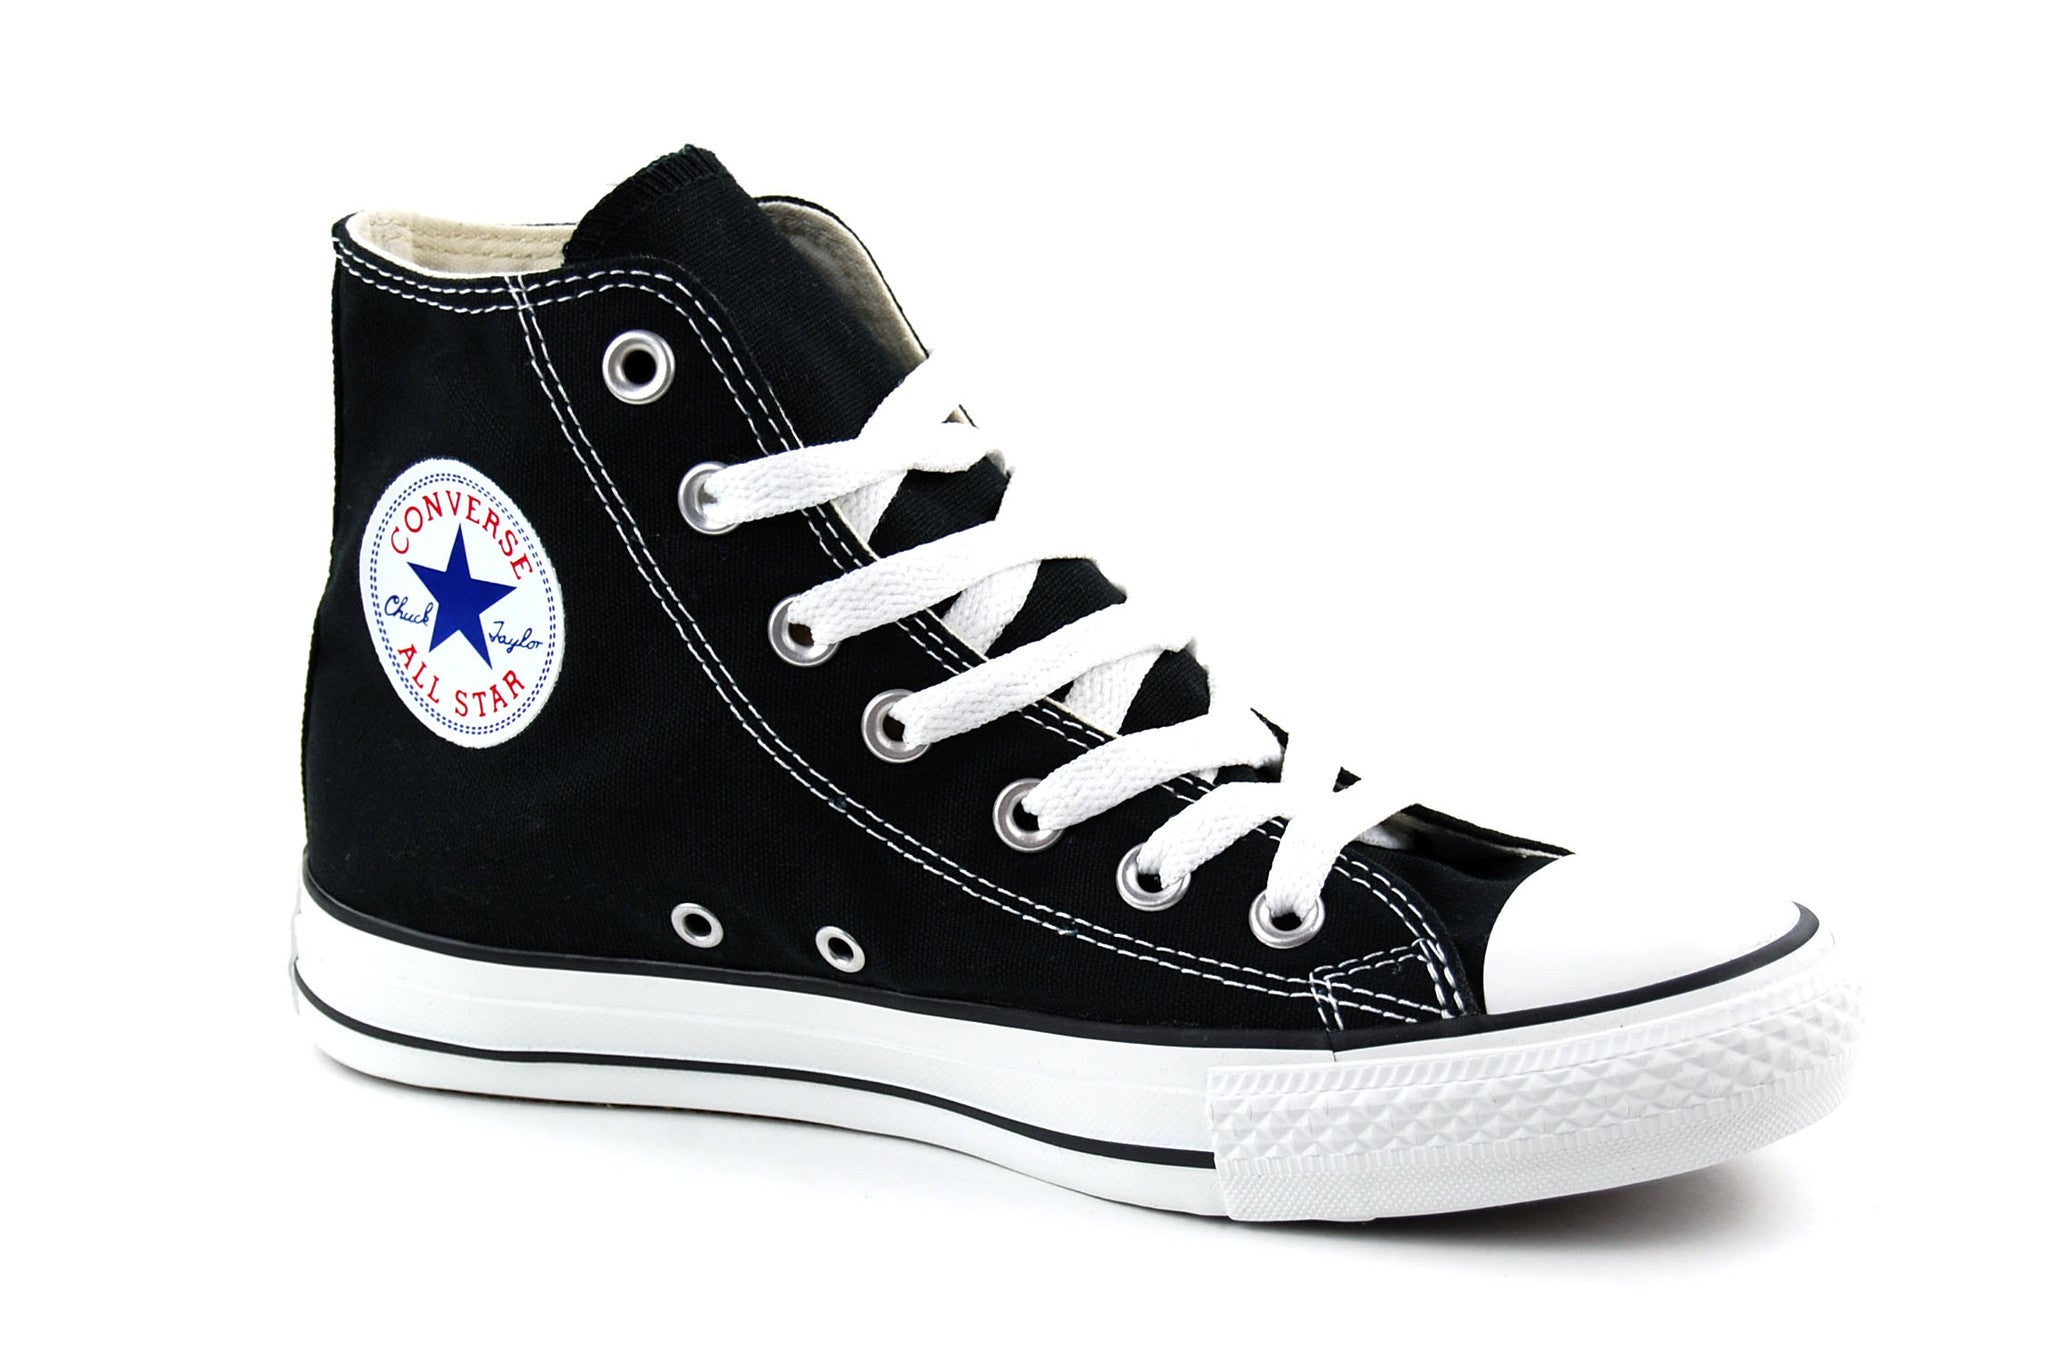 549a31d5300a Converse Unisex Black Chuck Taylor All Star High Top - Foot Paths Shoes